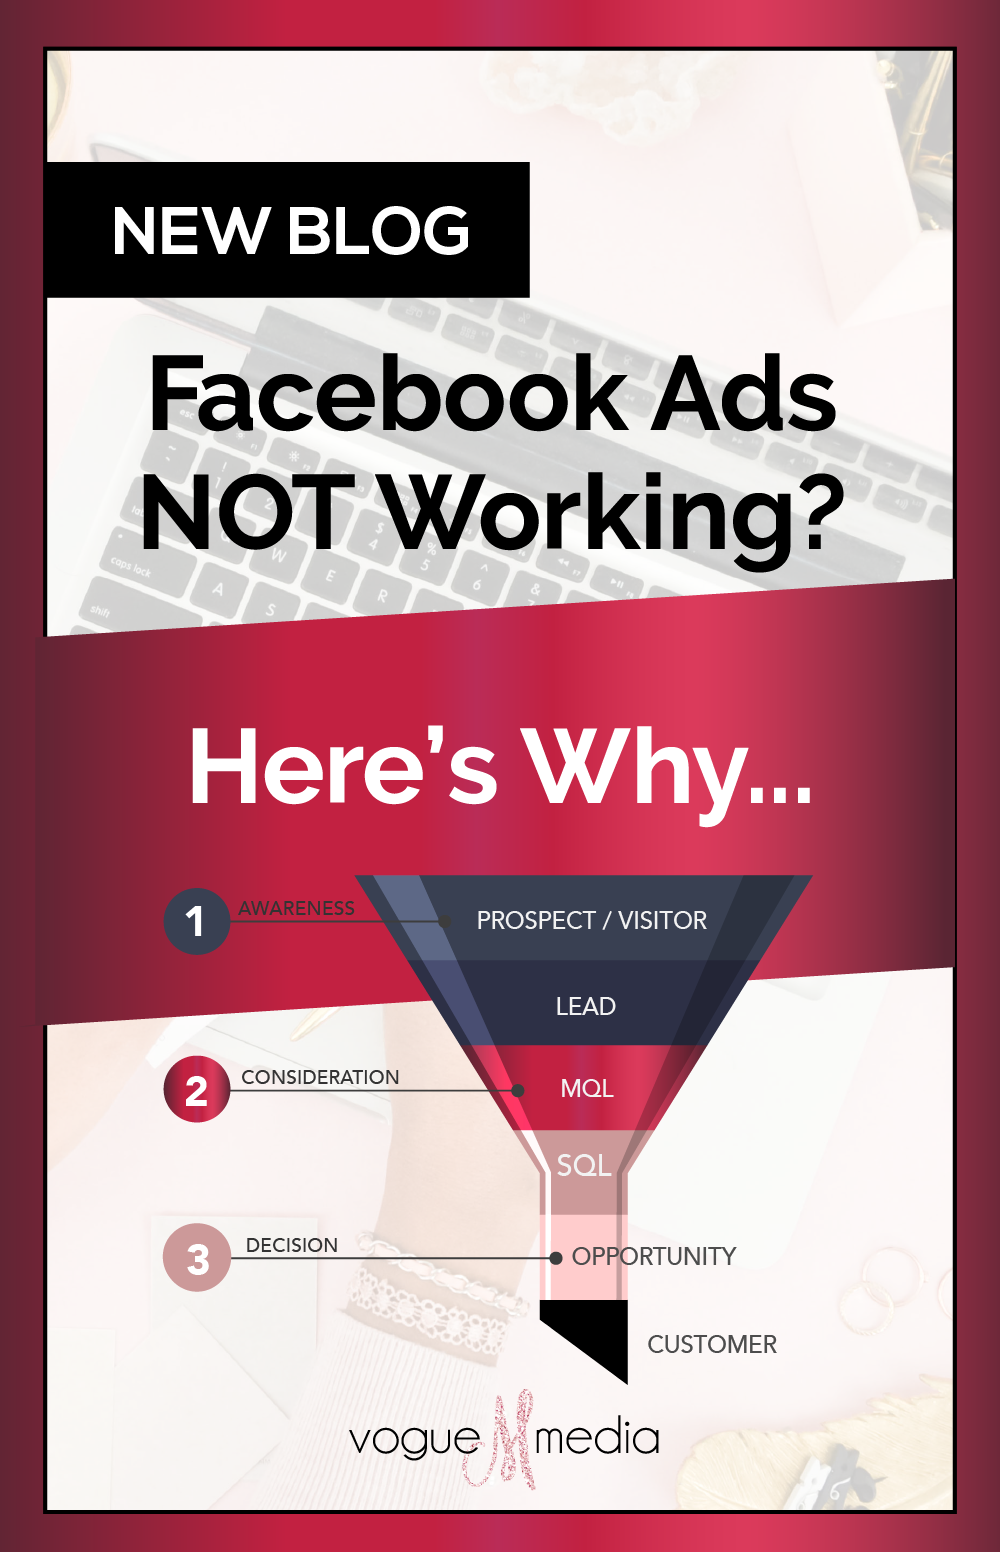 Facebook ads not working?